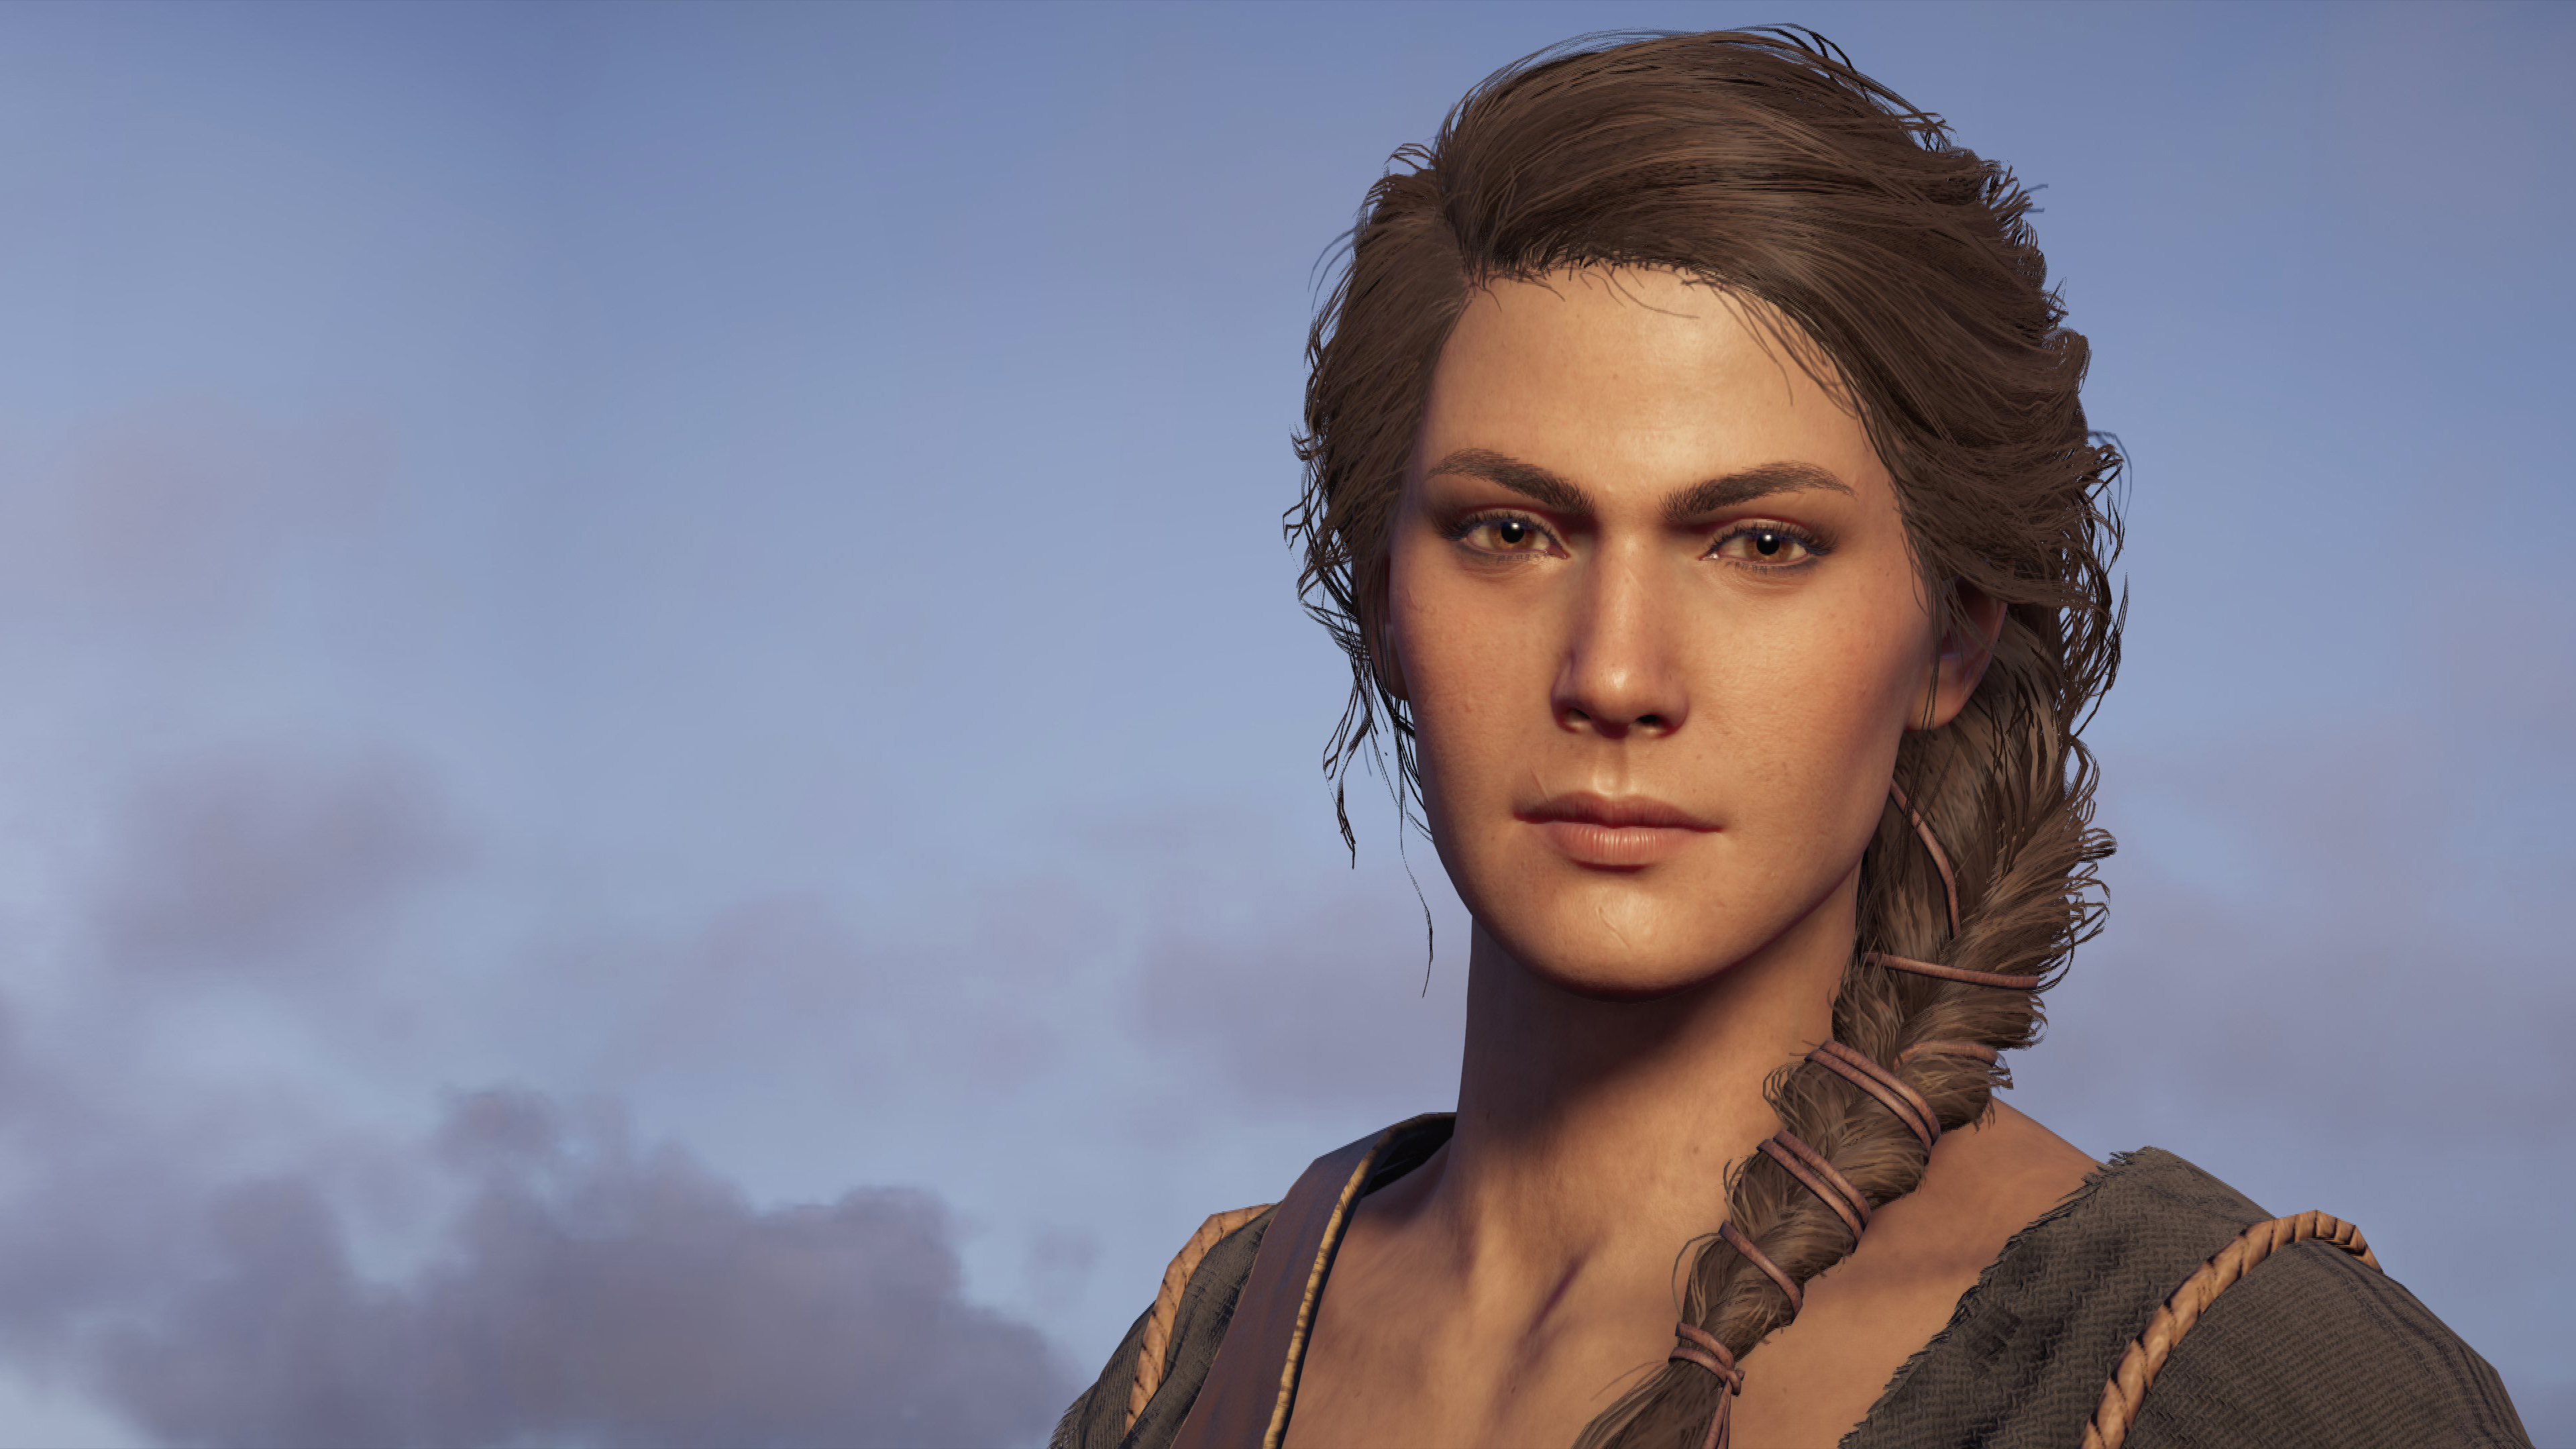 Kassandra Assassins Creed Odyssey Hd Games 4k Wallpapers Images